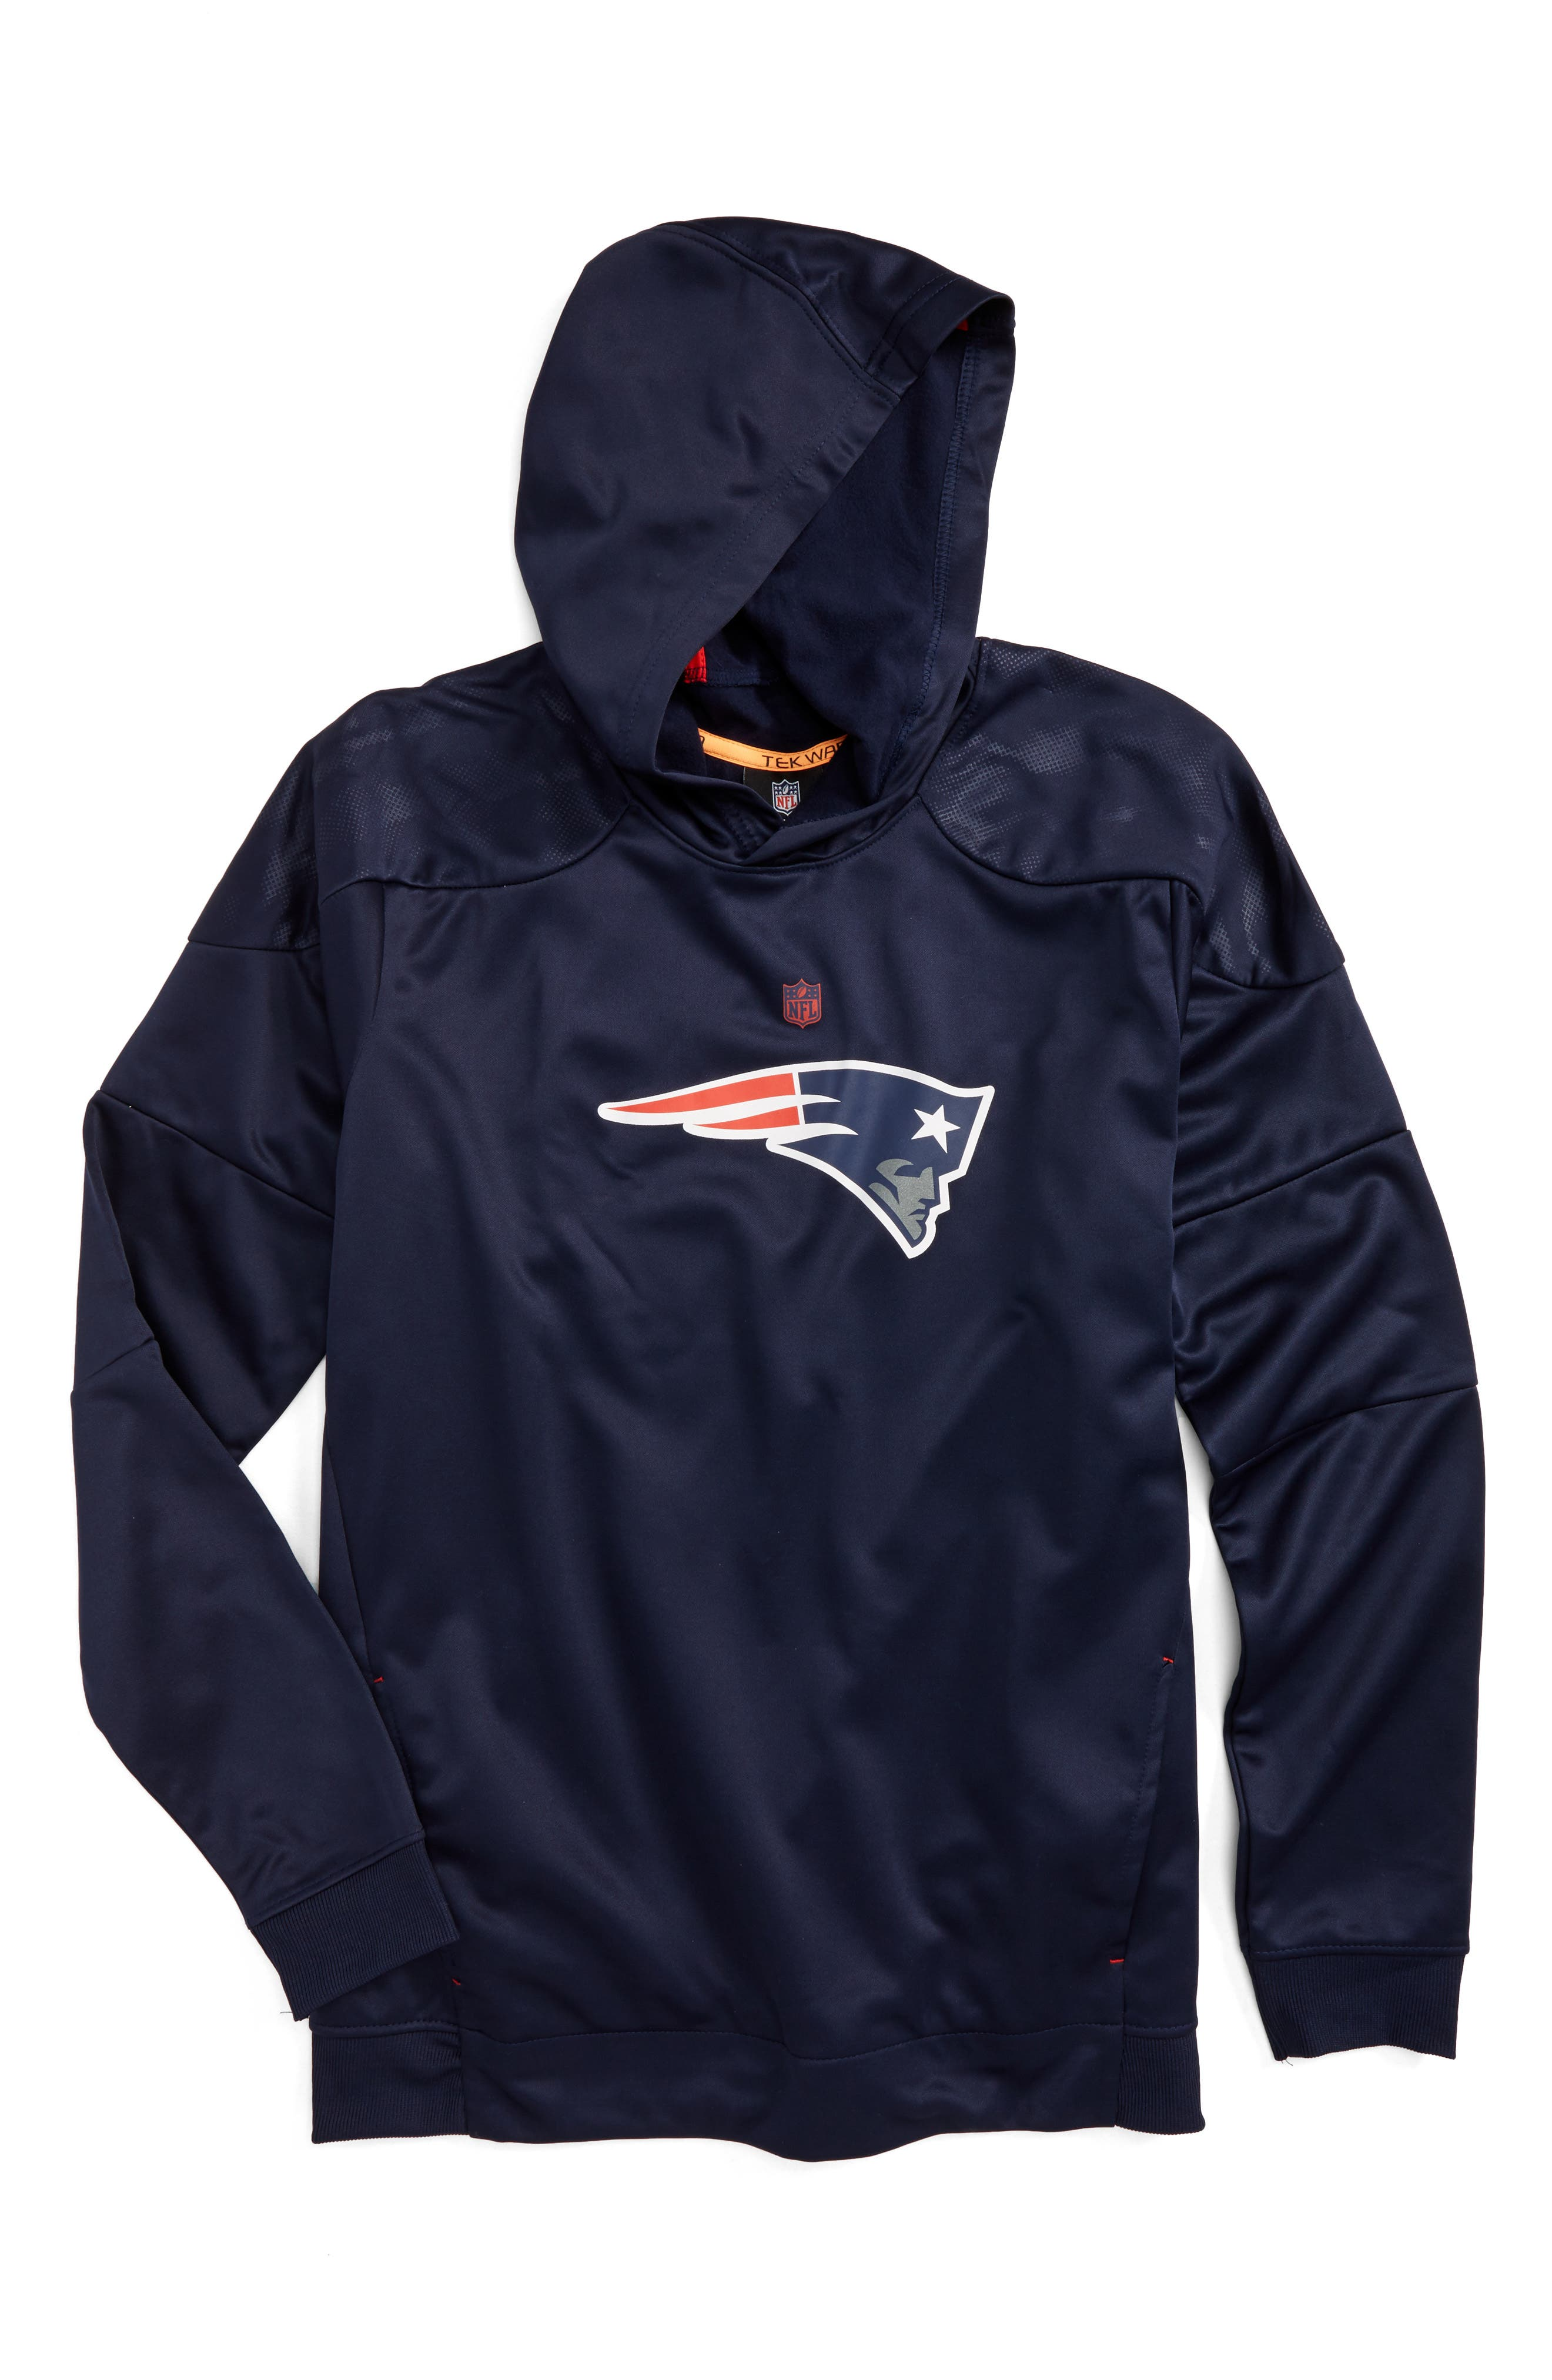 NFL New England Patriots Hoodie,                             Main thumbnail 1, color,                             400